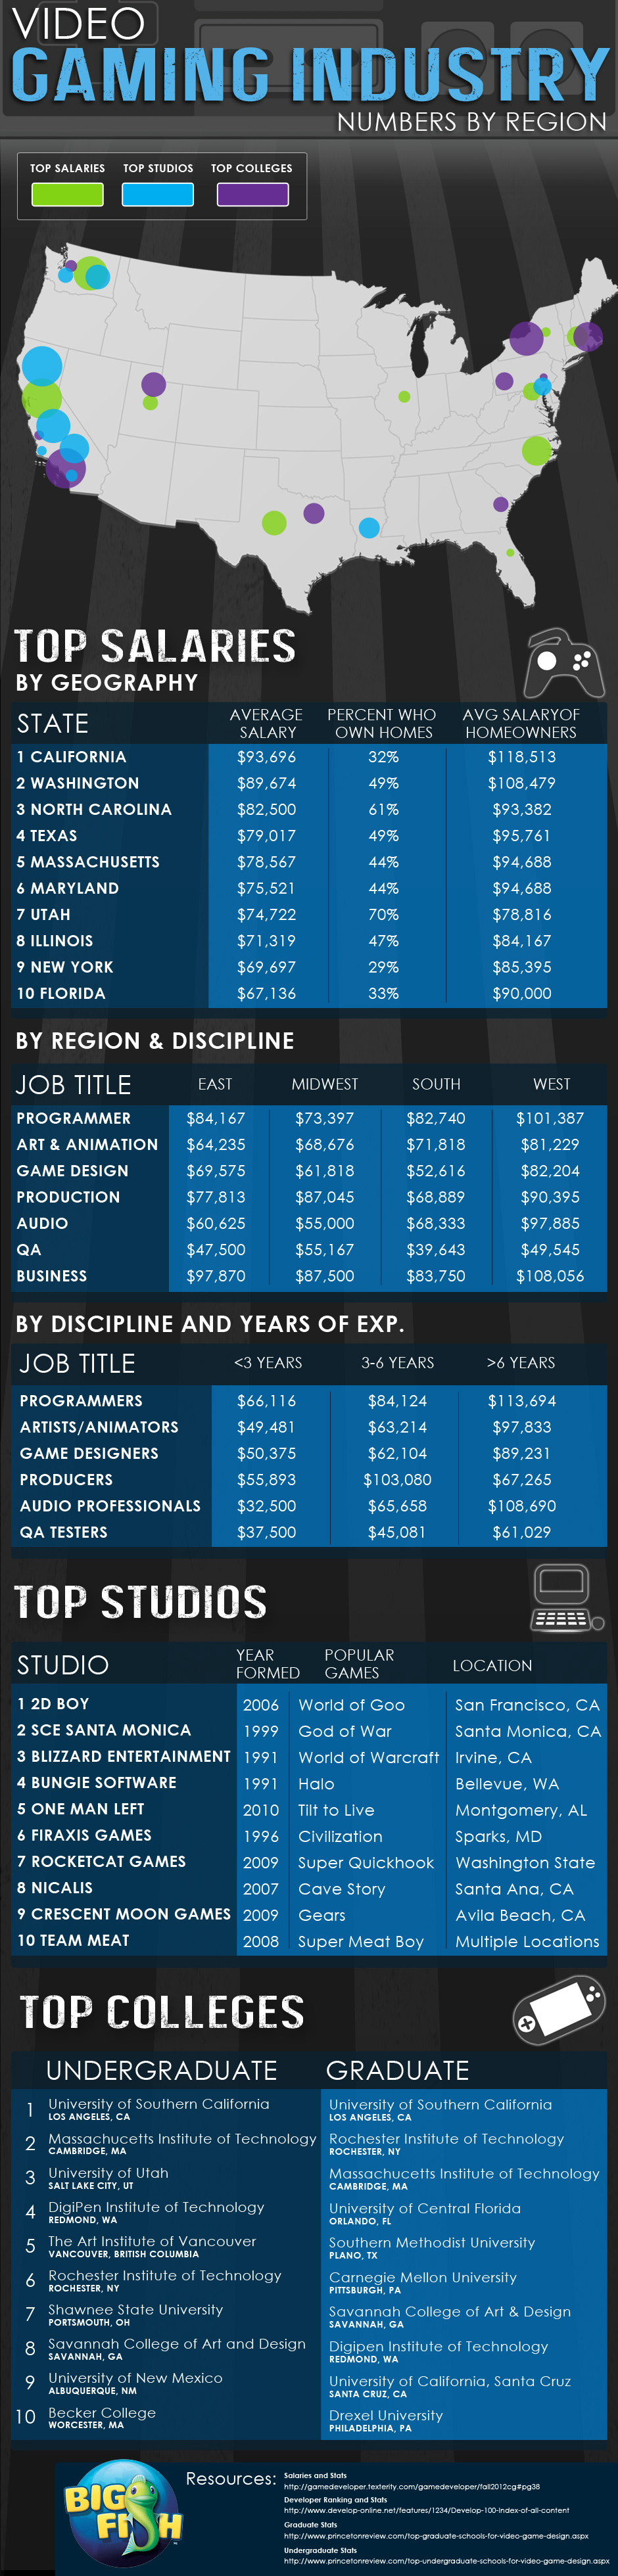 Top Gaming Studios, Schools & Salaries